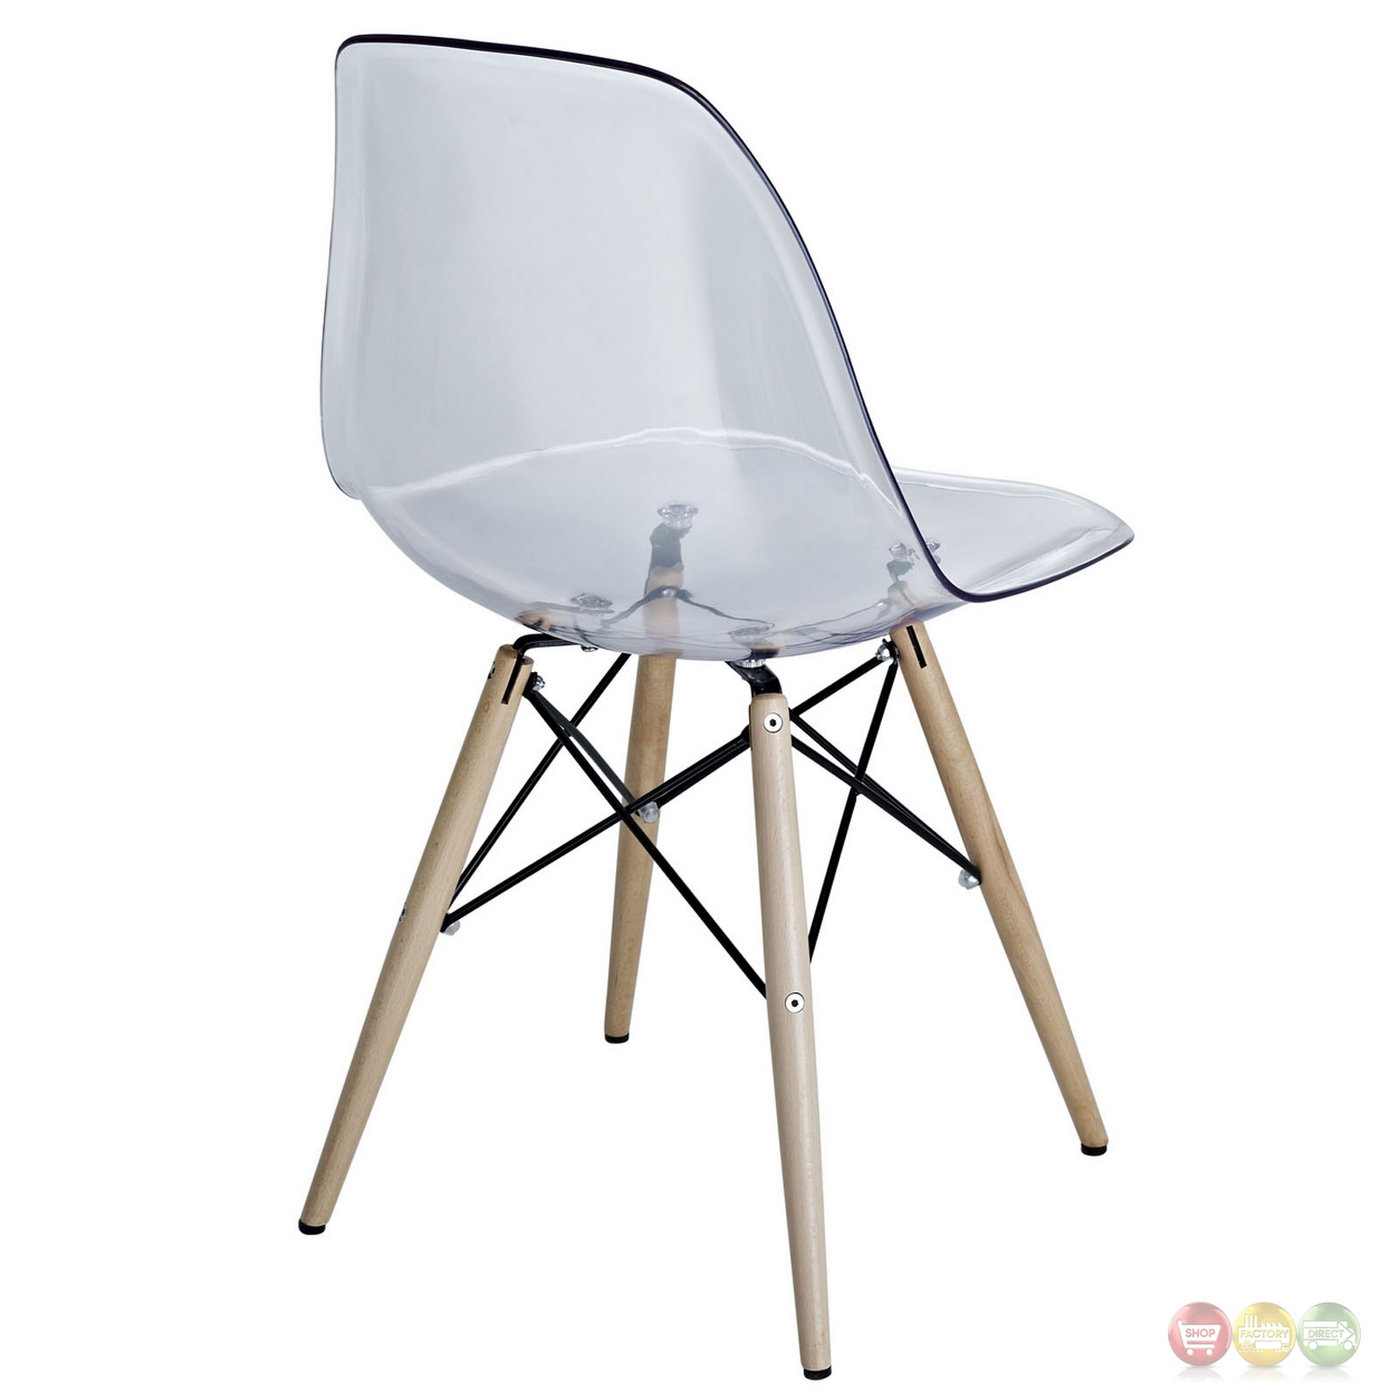 Clear Acrylic Chair Pyramid Modern Molded Plastic Transparent Dining Side